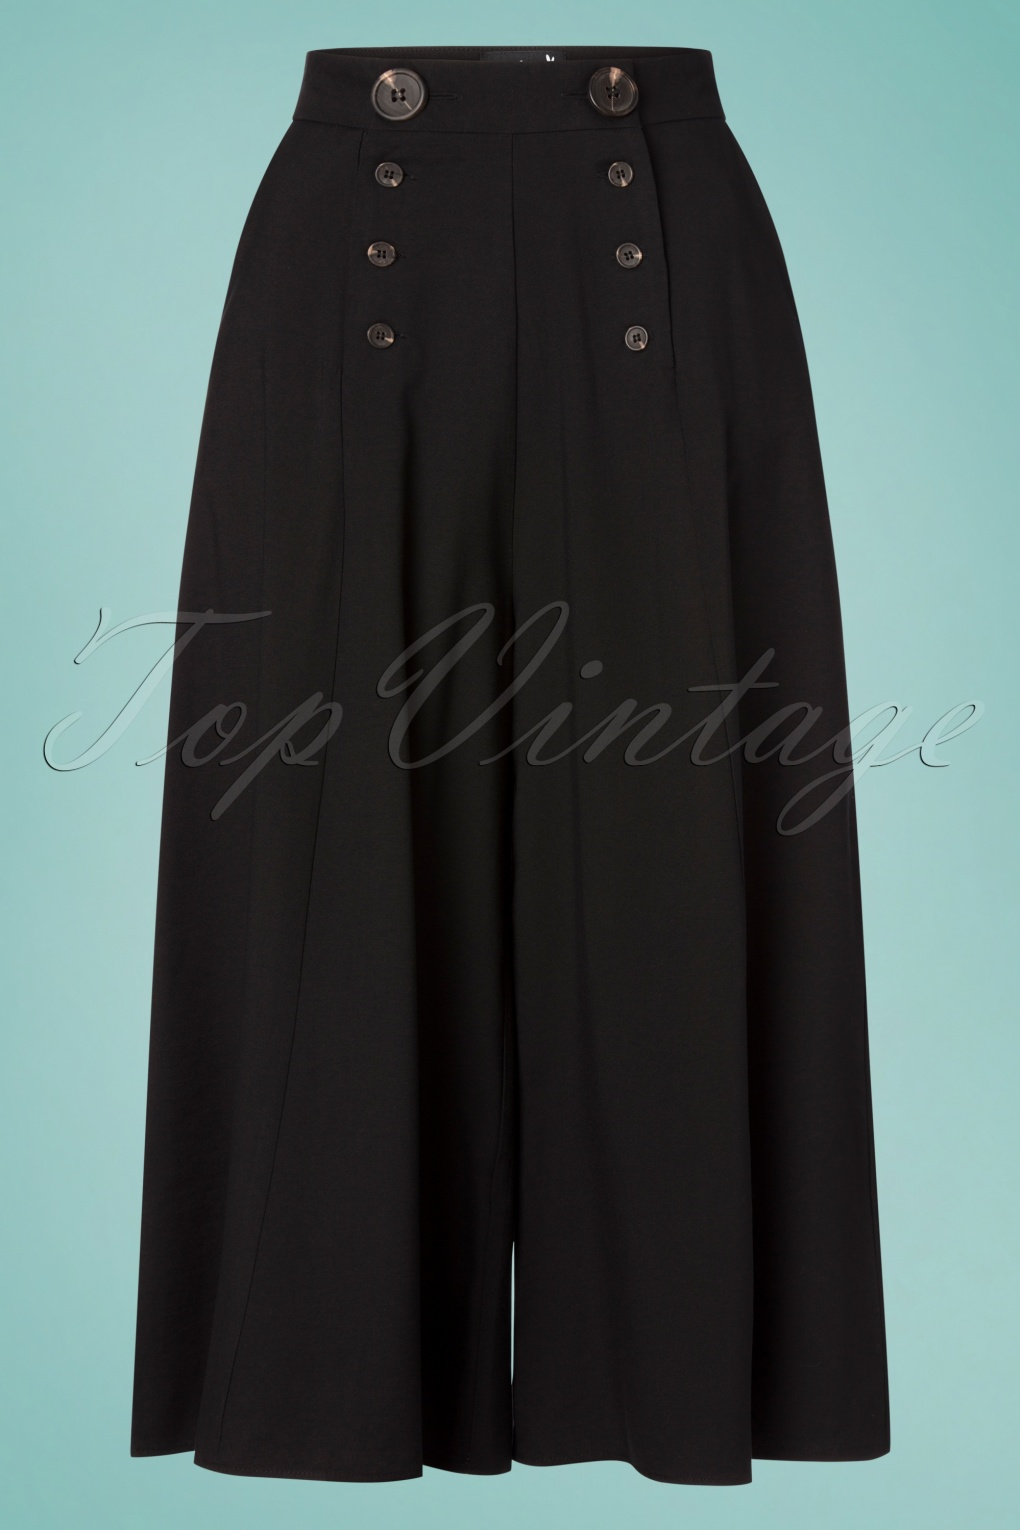 Vintage Shorts, Culottes,  Capris History 30s Murphy Culottes in Black £52.40 AT vintagedancer.com